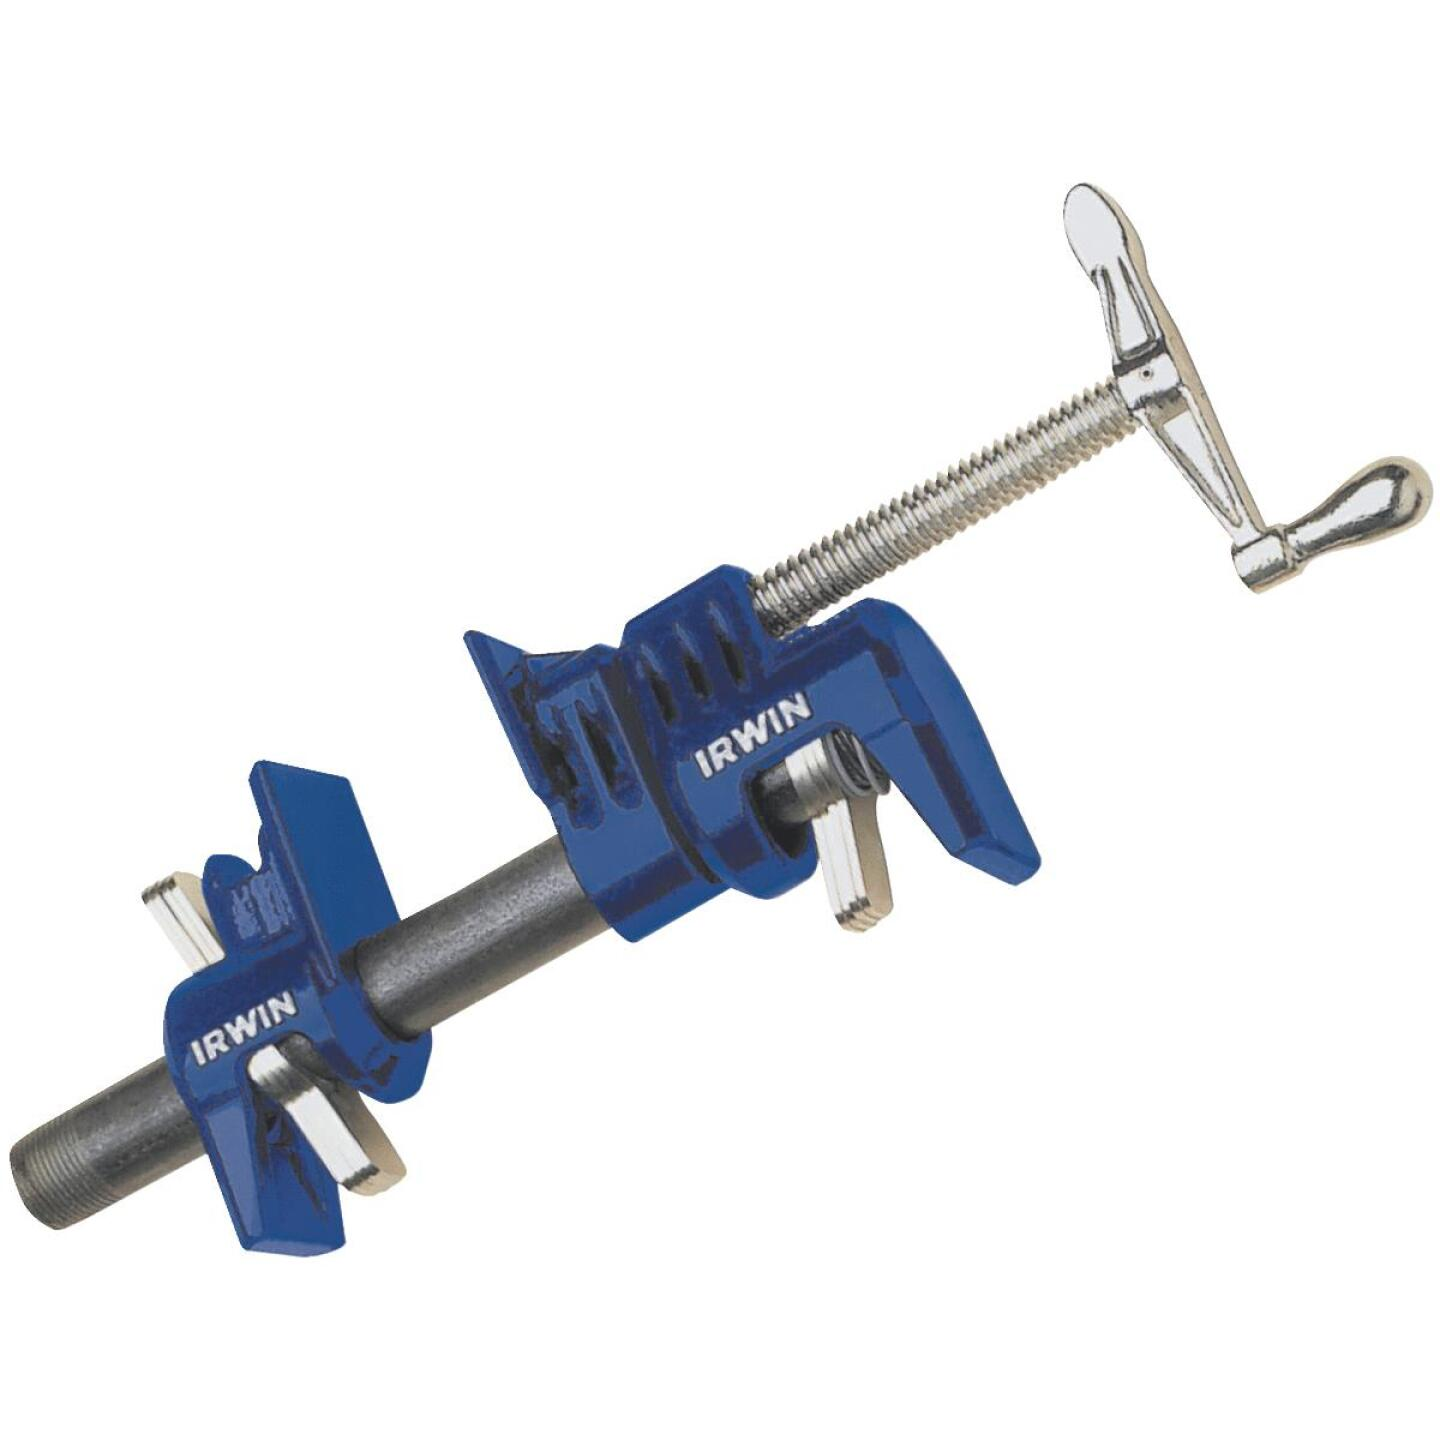 Irwin Quick-Grip 3/4 In. Pipe Clamp Image 3